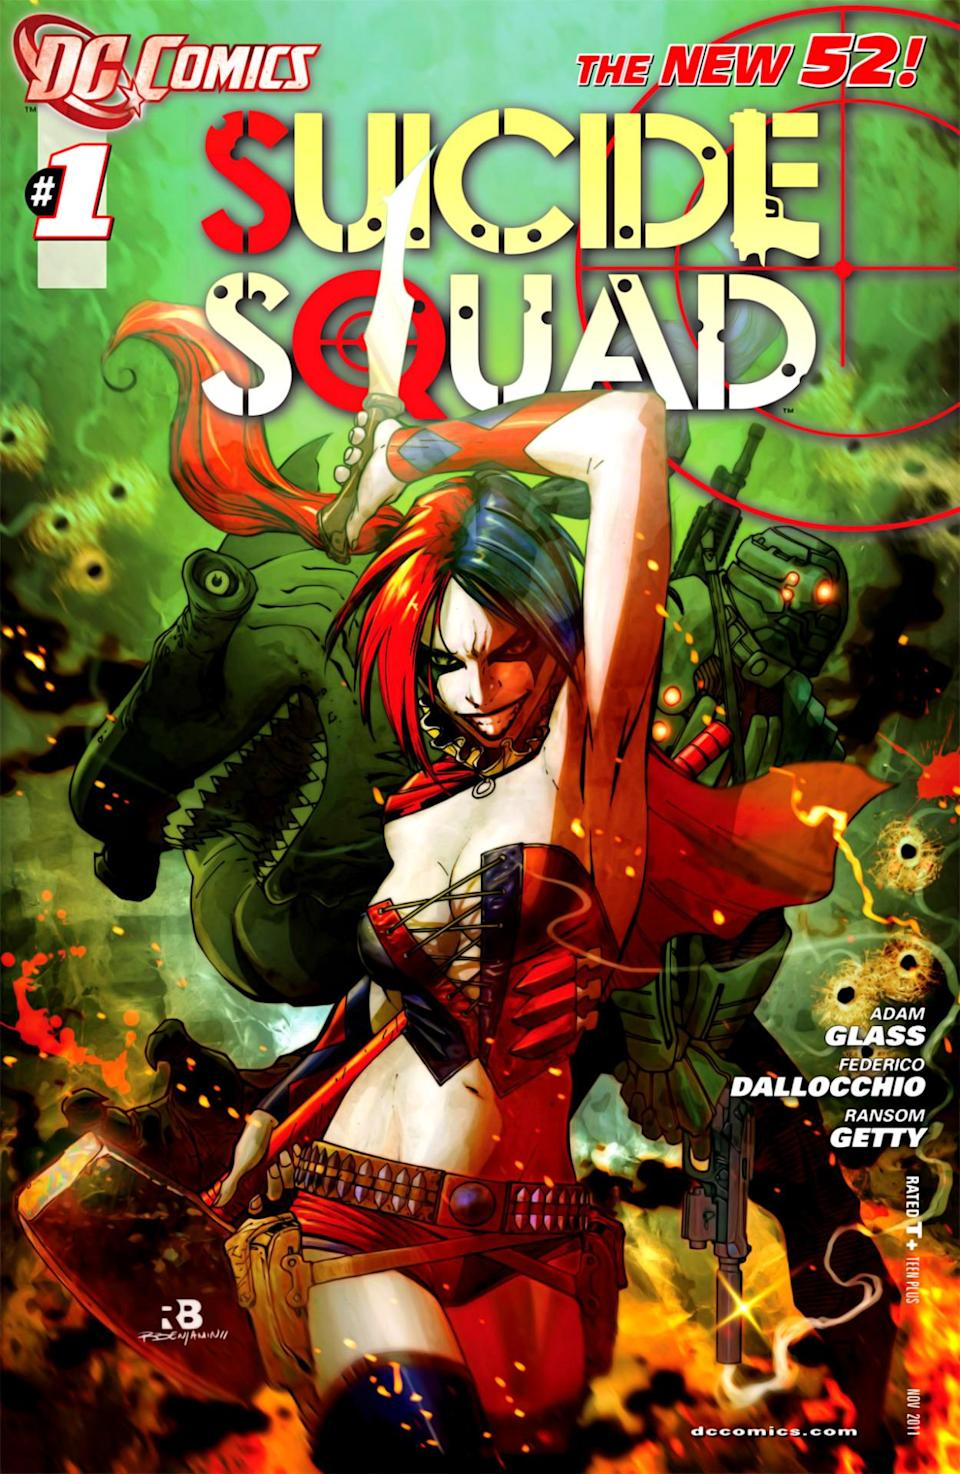 "<p>In 2011, DC rebooted its comic universe, with Harley featured majorly in several books of ""The New 52,"" including a reimagined <i>Suicide Squad</i>. The heavy makeup, two-toned hair, and barely there costume informs Robbie's movie look. ""I was really excited when 'The New 52' came out… They did a solo book on her, and the <i>Suicide Squad</i> was going to use her. She was also such a prominent element in the video games. Suddenly she was everywhere,"" says Dini. <i>(Image: DC Comics)</i></p>"